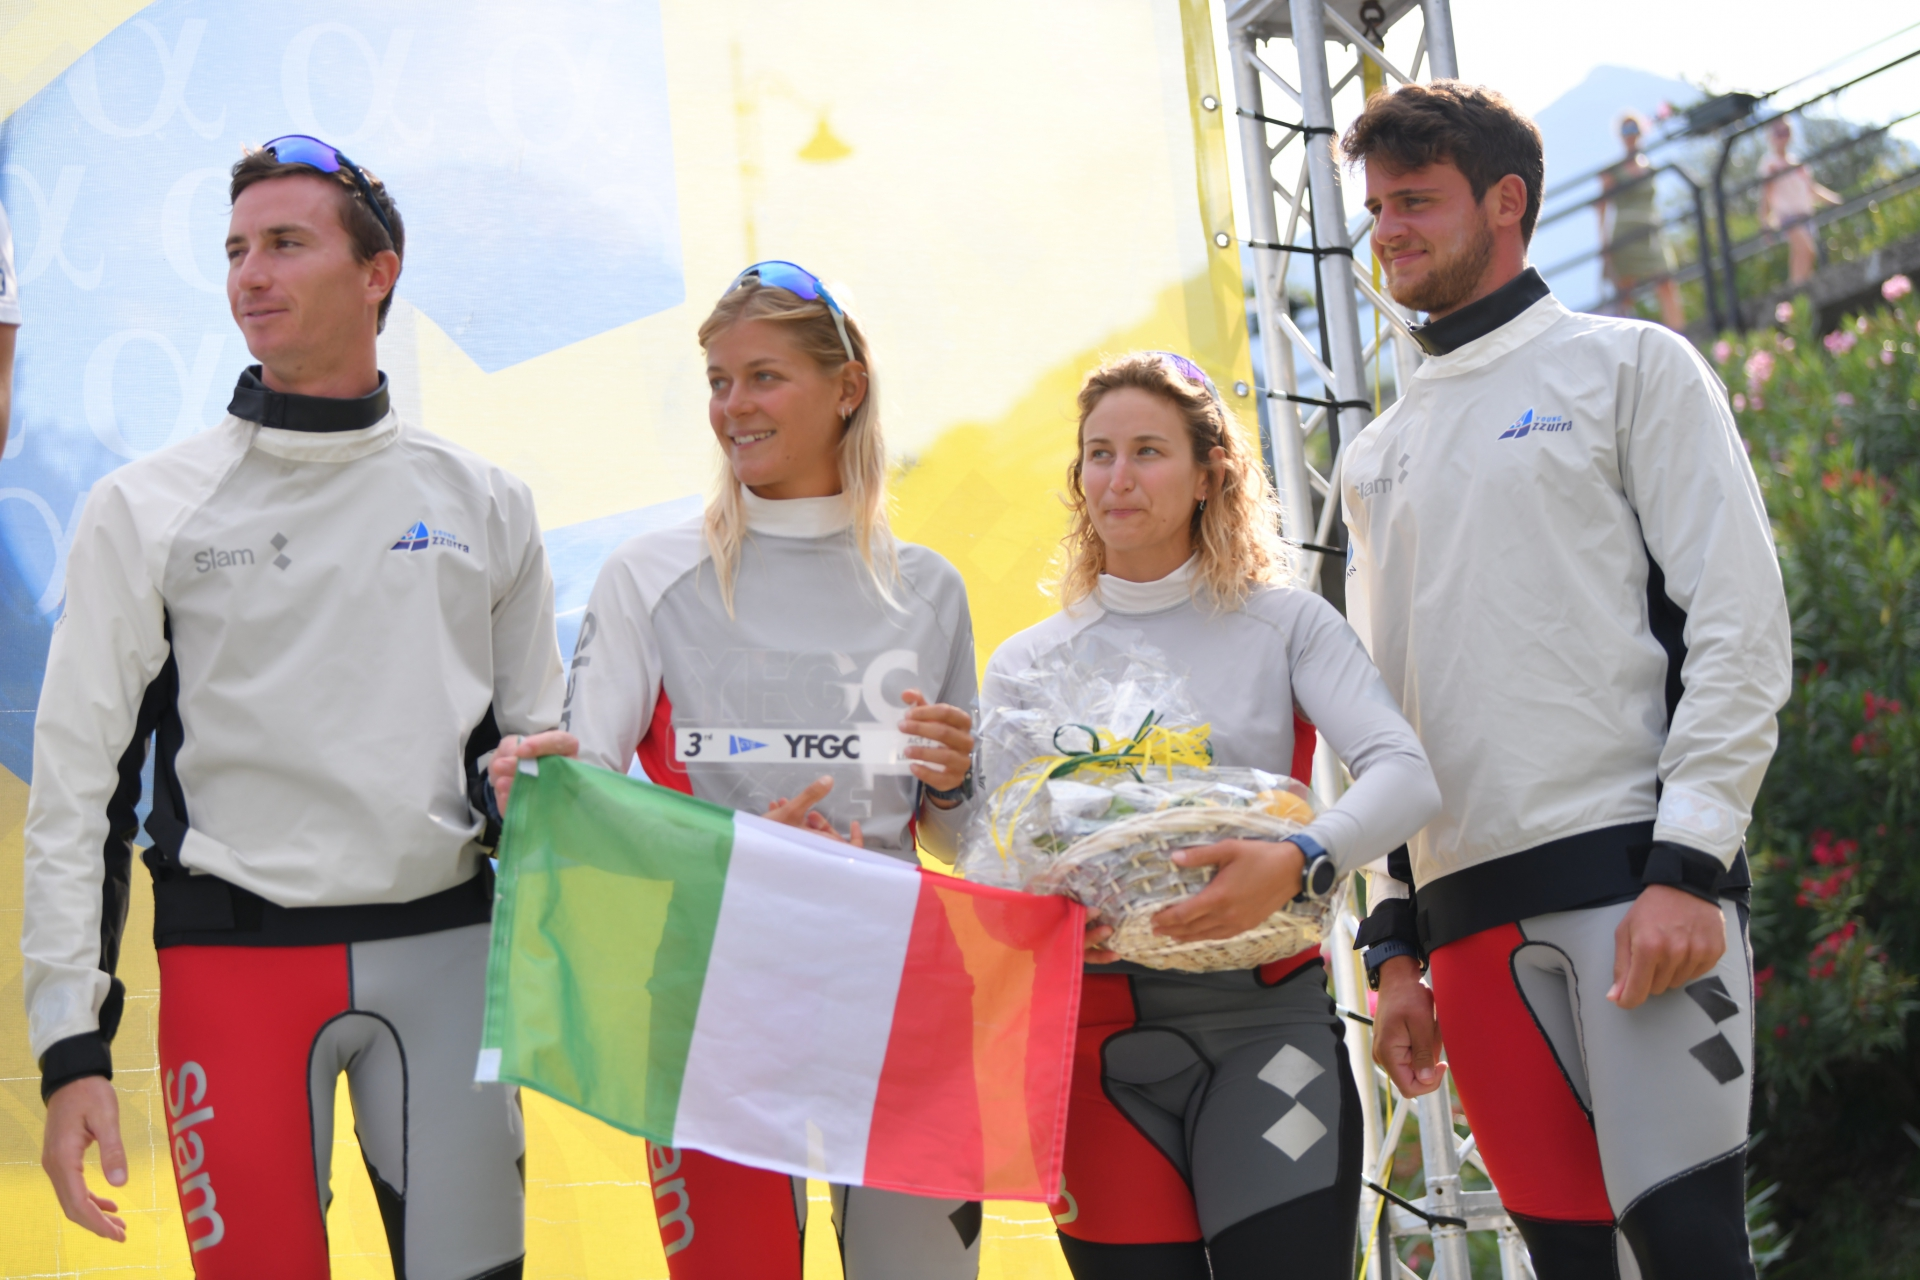 Young Azzurra terza alla Youth Foiling Gold Cup Act 2 - NEWS - Yacht Club Costa Smeralda